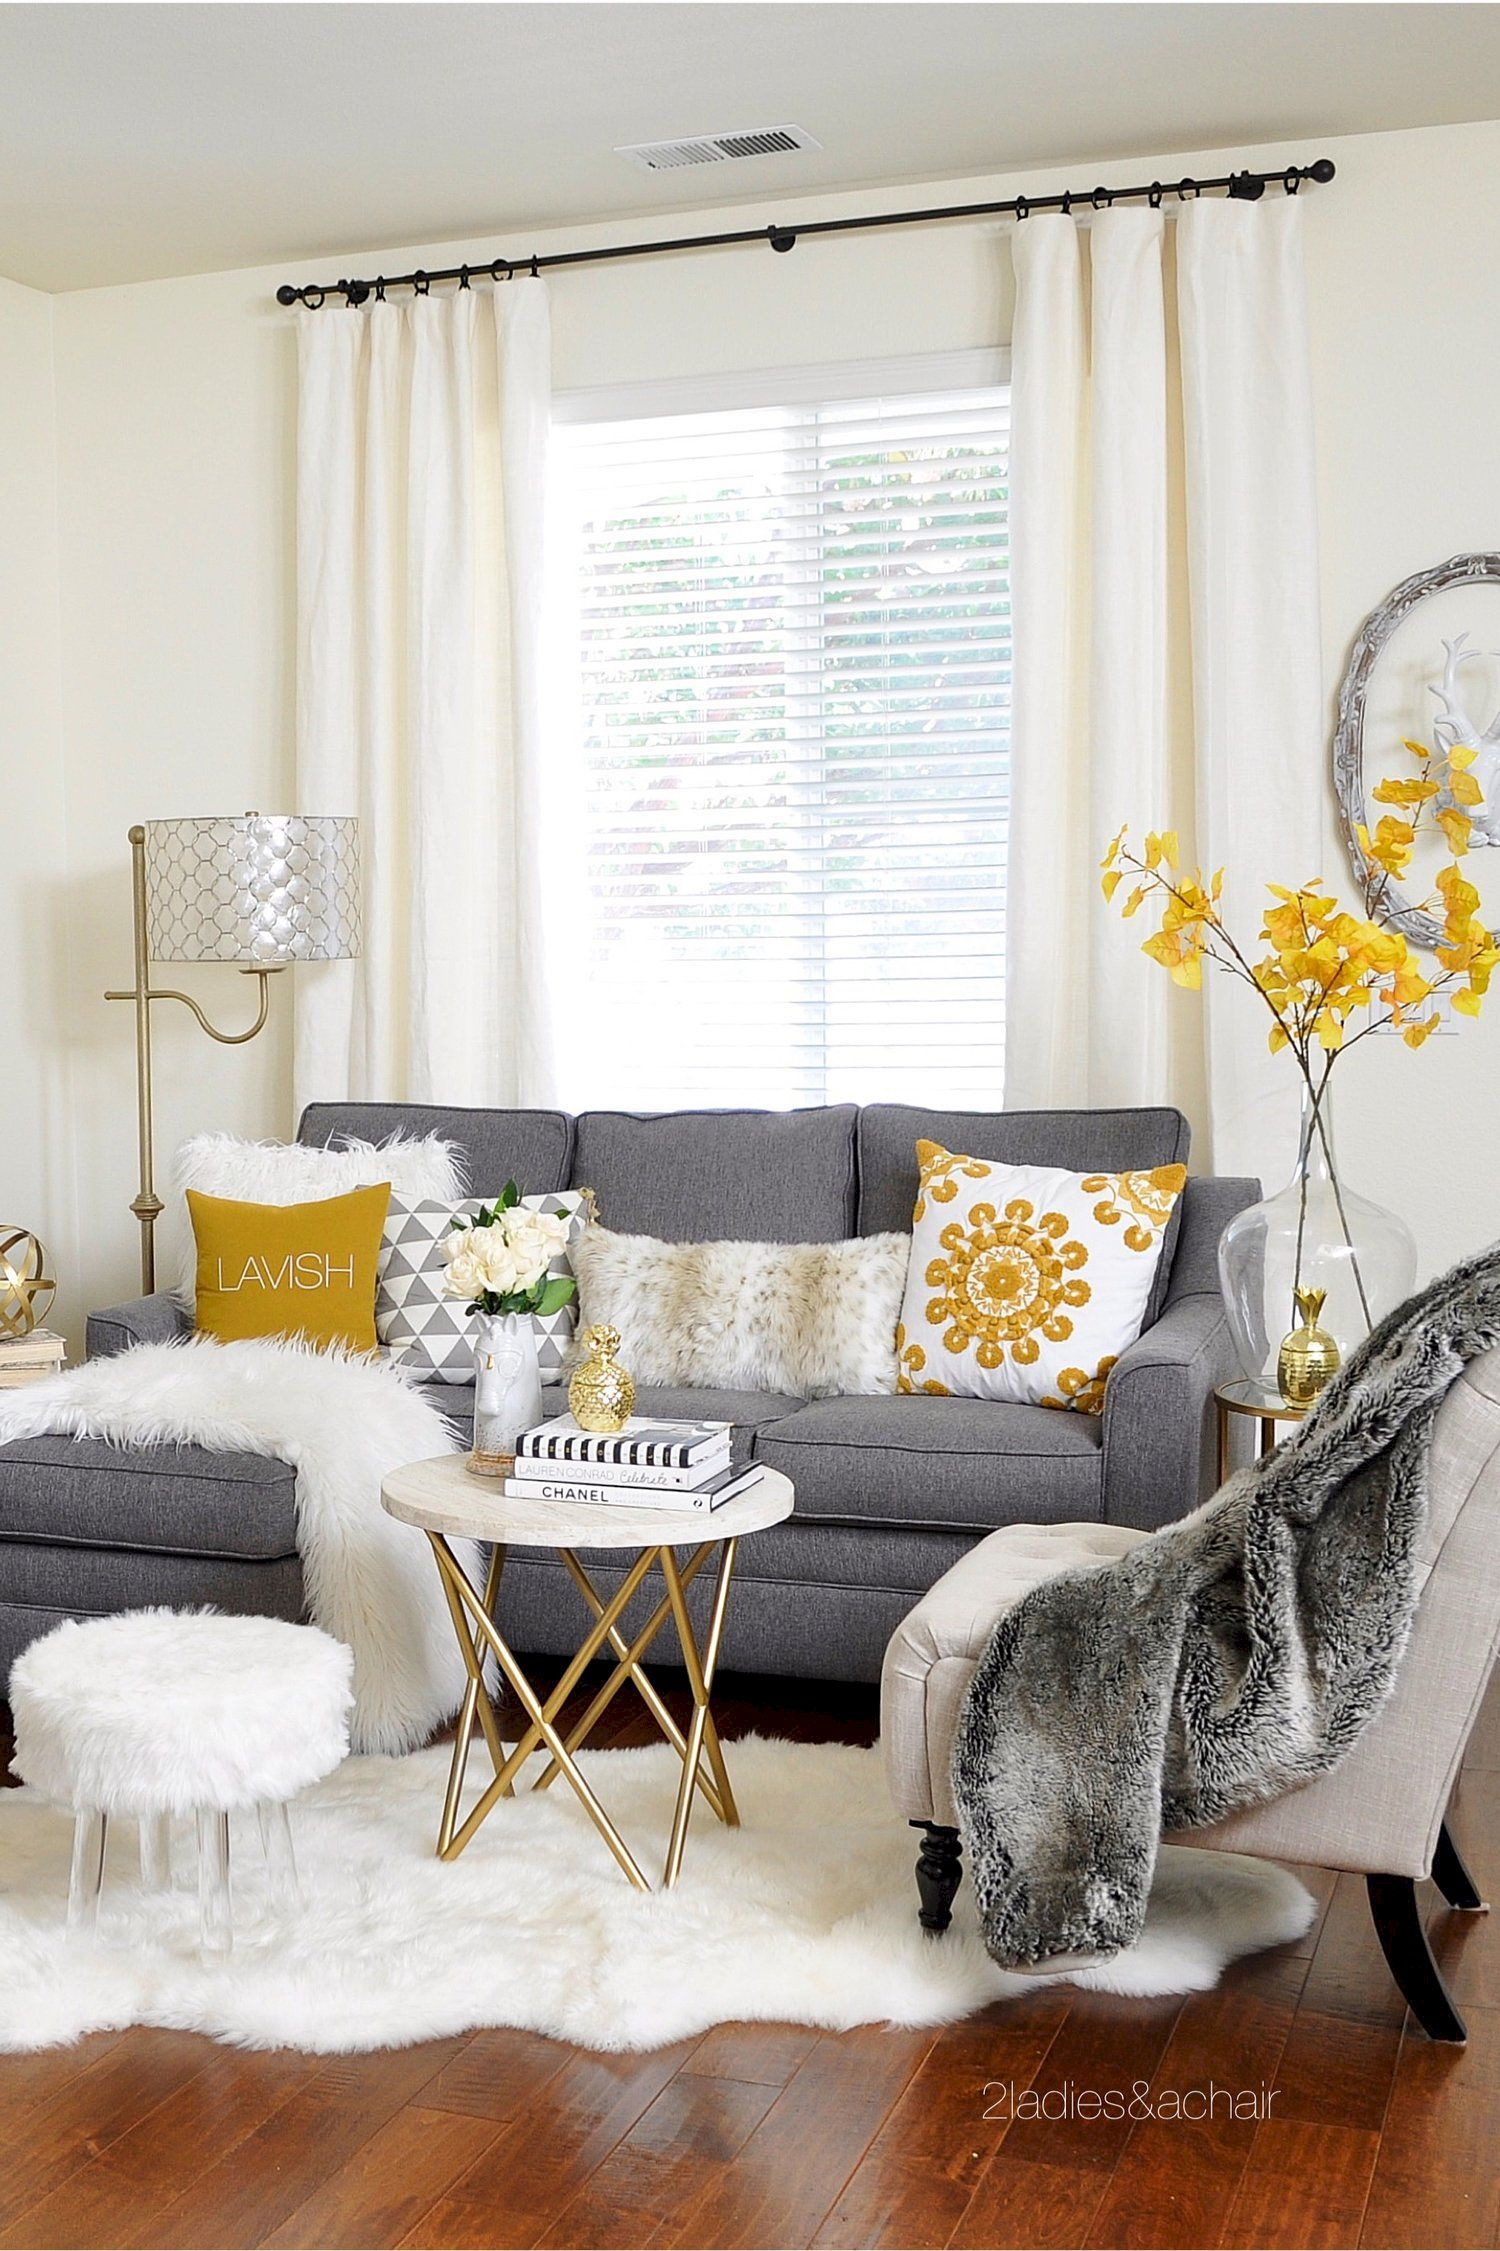 Sofas For Small Rooms Ideas To Go London Road Liverpool Beautiful Living Room Design Dream House Pinterest Inspiration Pictures